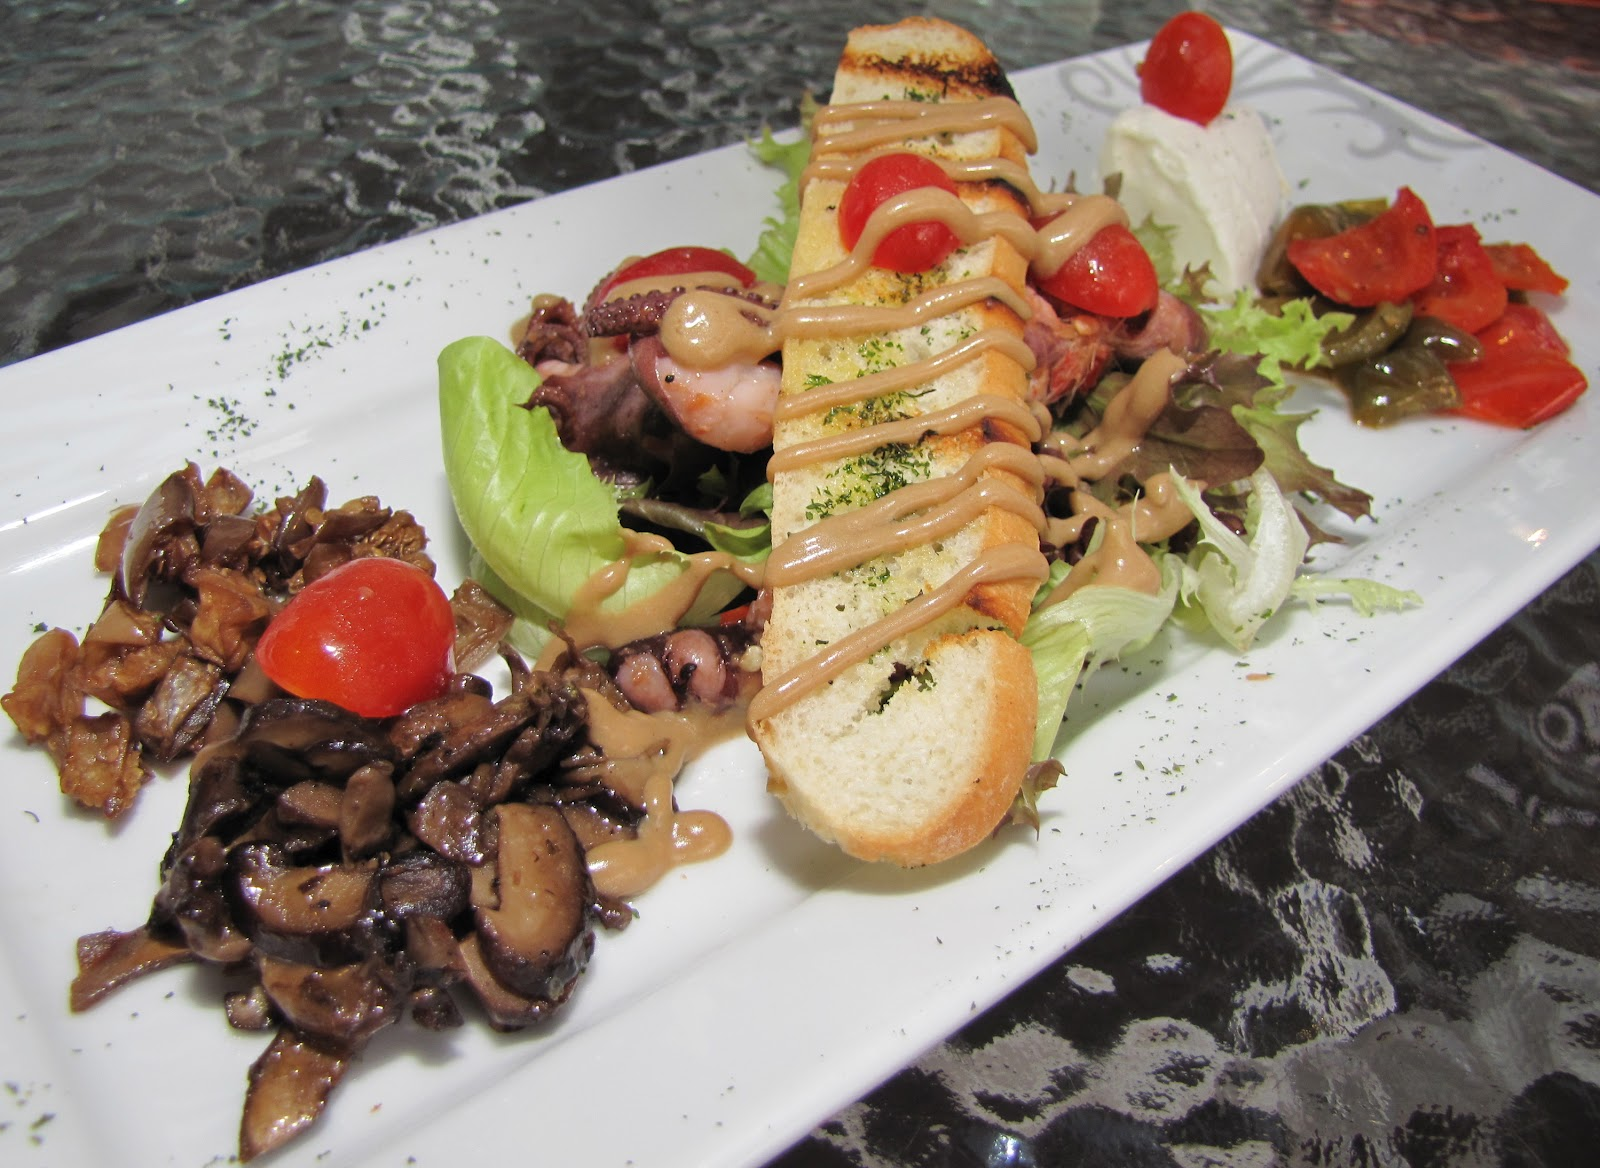 ... eggplant, balsamic mushrooms, marinated feta salad and French toast